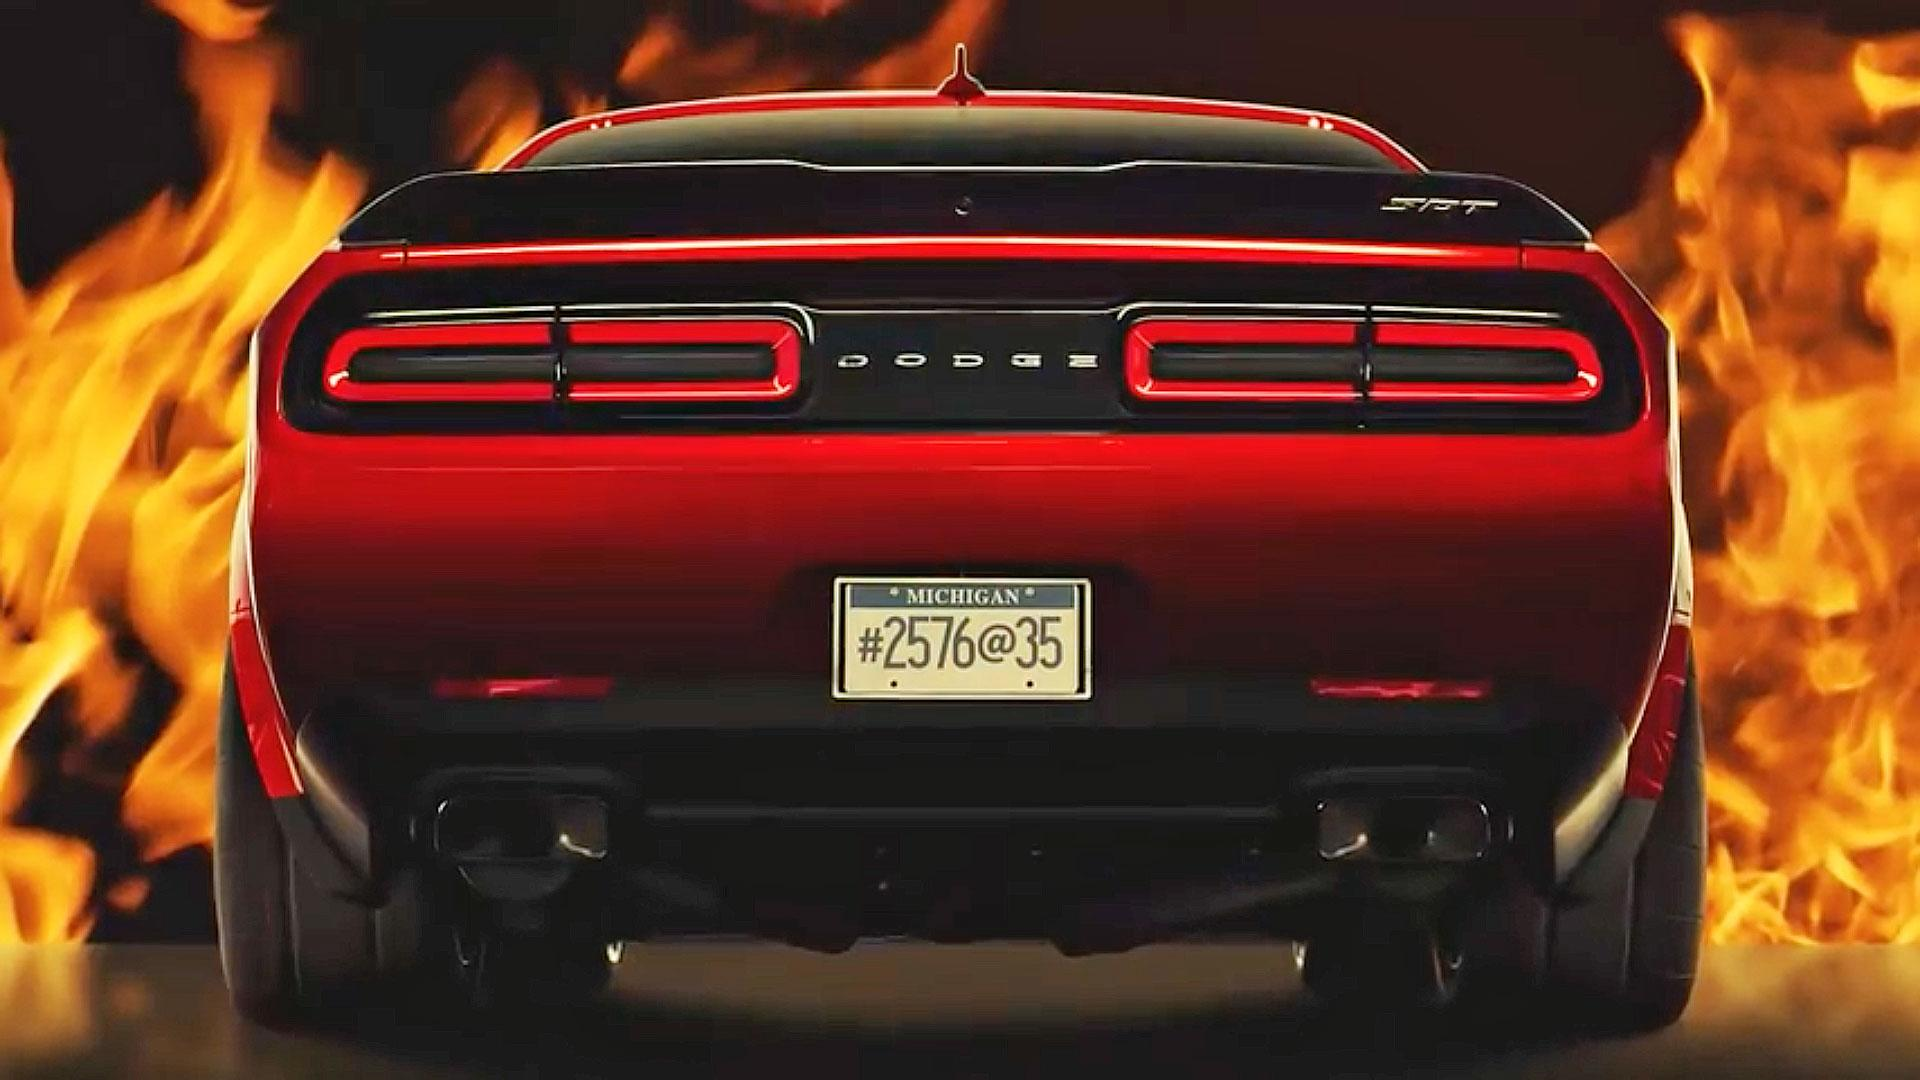 Will the Dodge Challenger Demon Only Have One Seat?